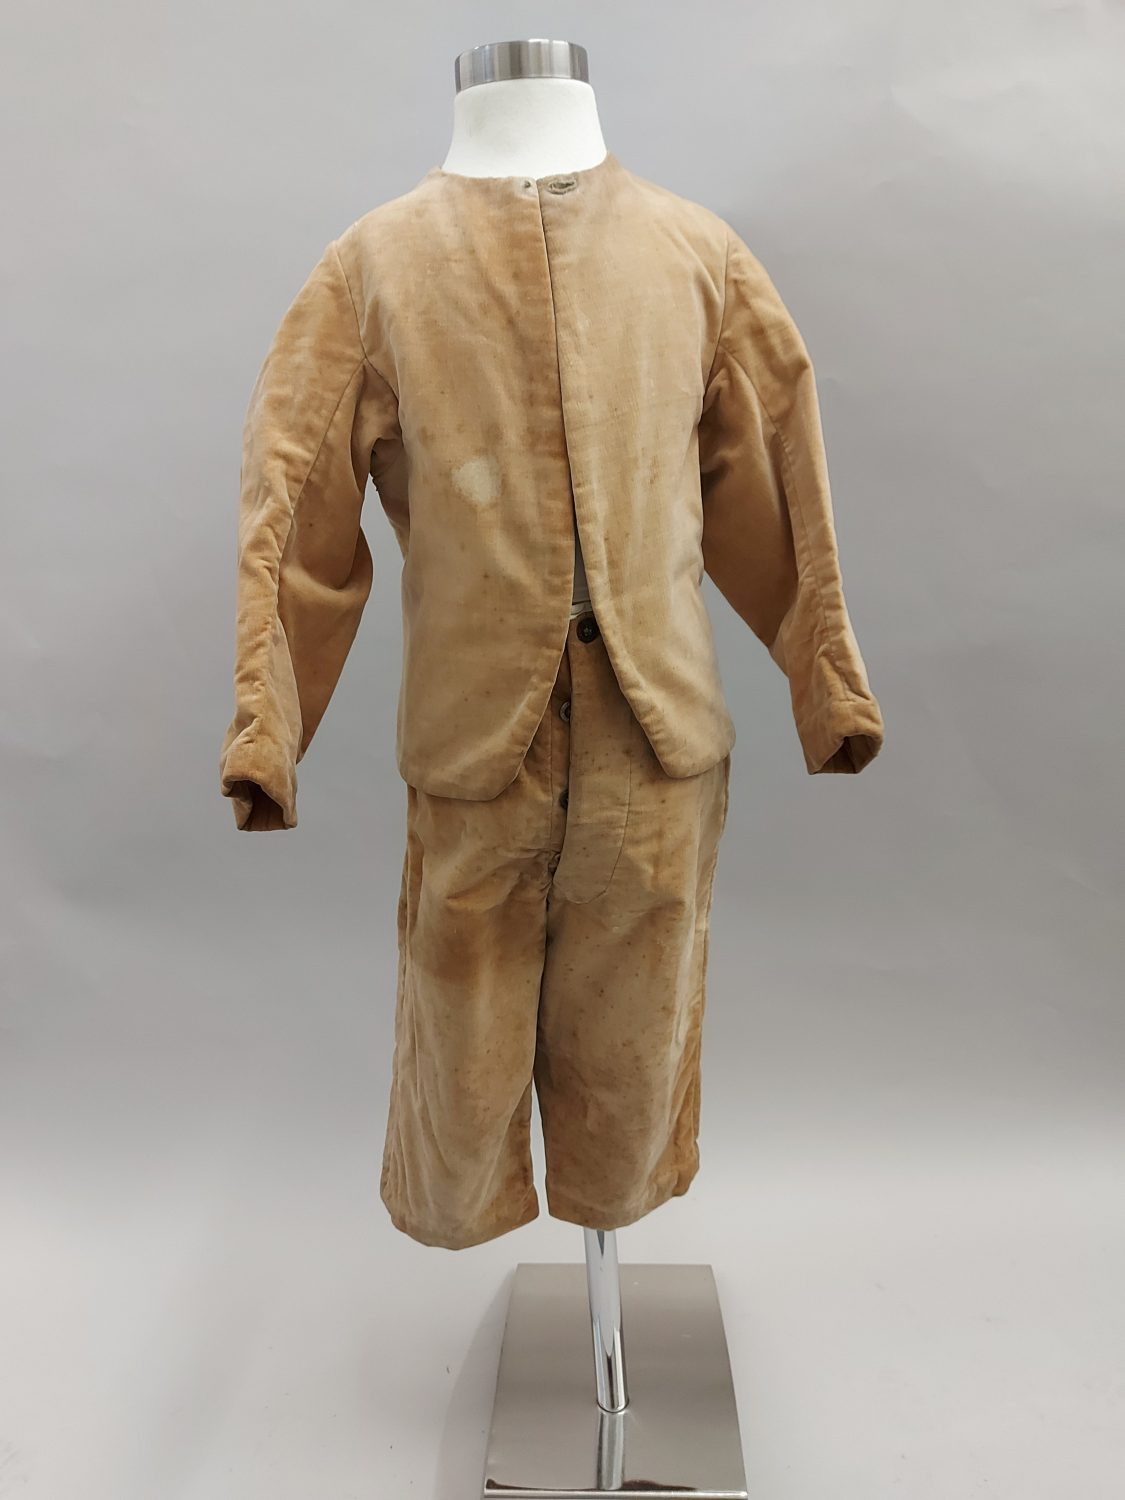 Boys suit on a mannequin, consisting of trousers and a jacket. The suit is a dull cream coloured crushed velvet speckled with lighter and darker spots due to age. The jacket has no buttons but a small fasting at the top.